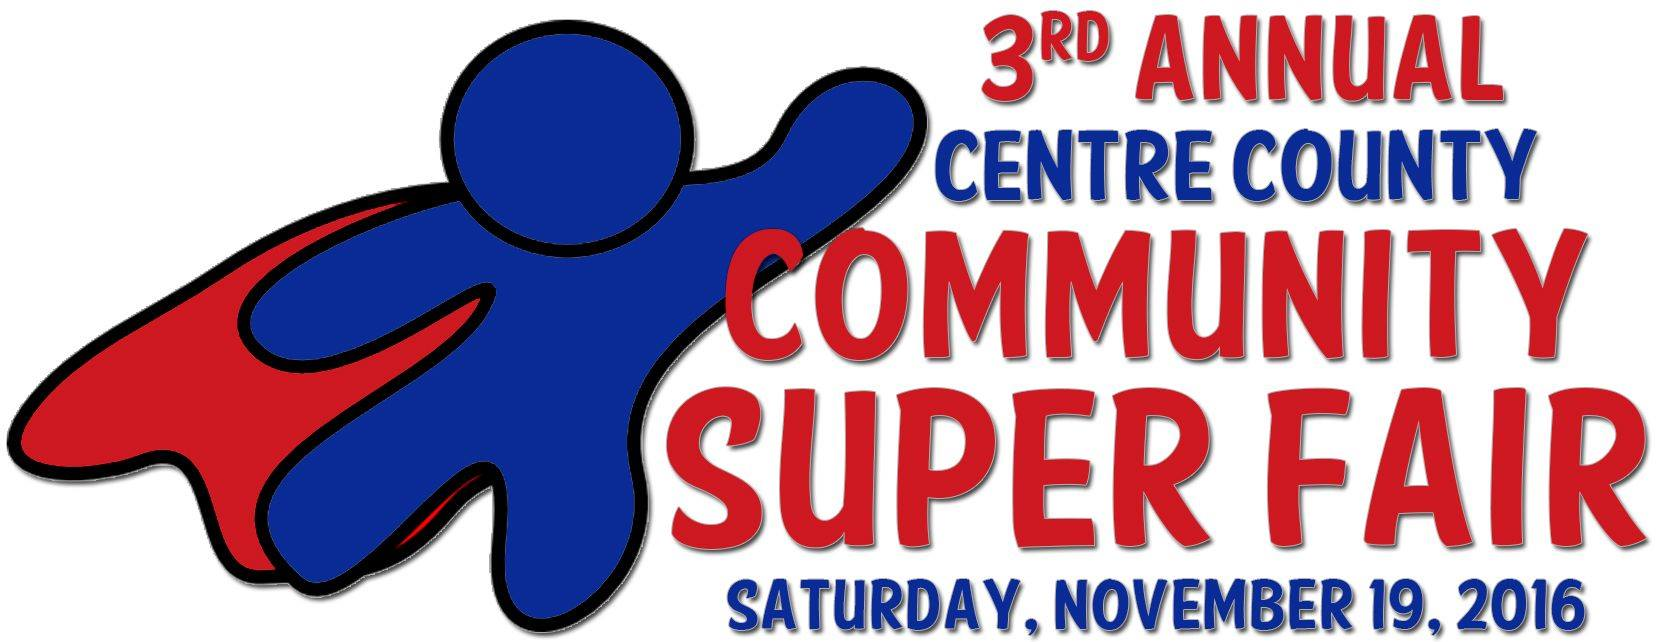 Centre County Community Super Fair 2016